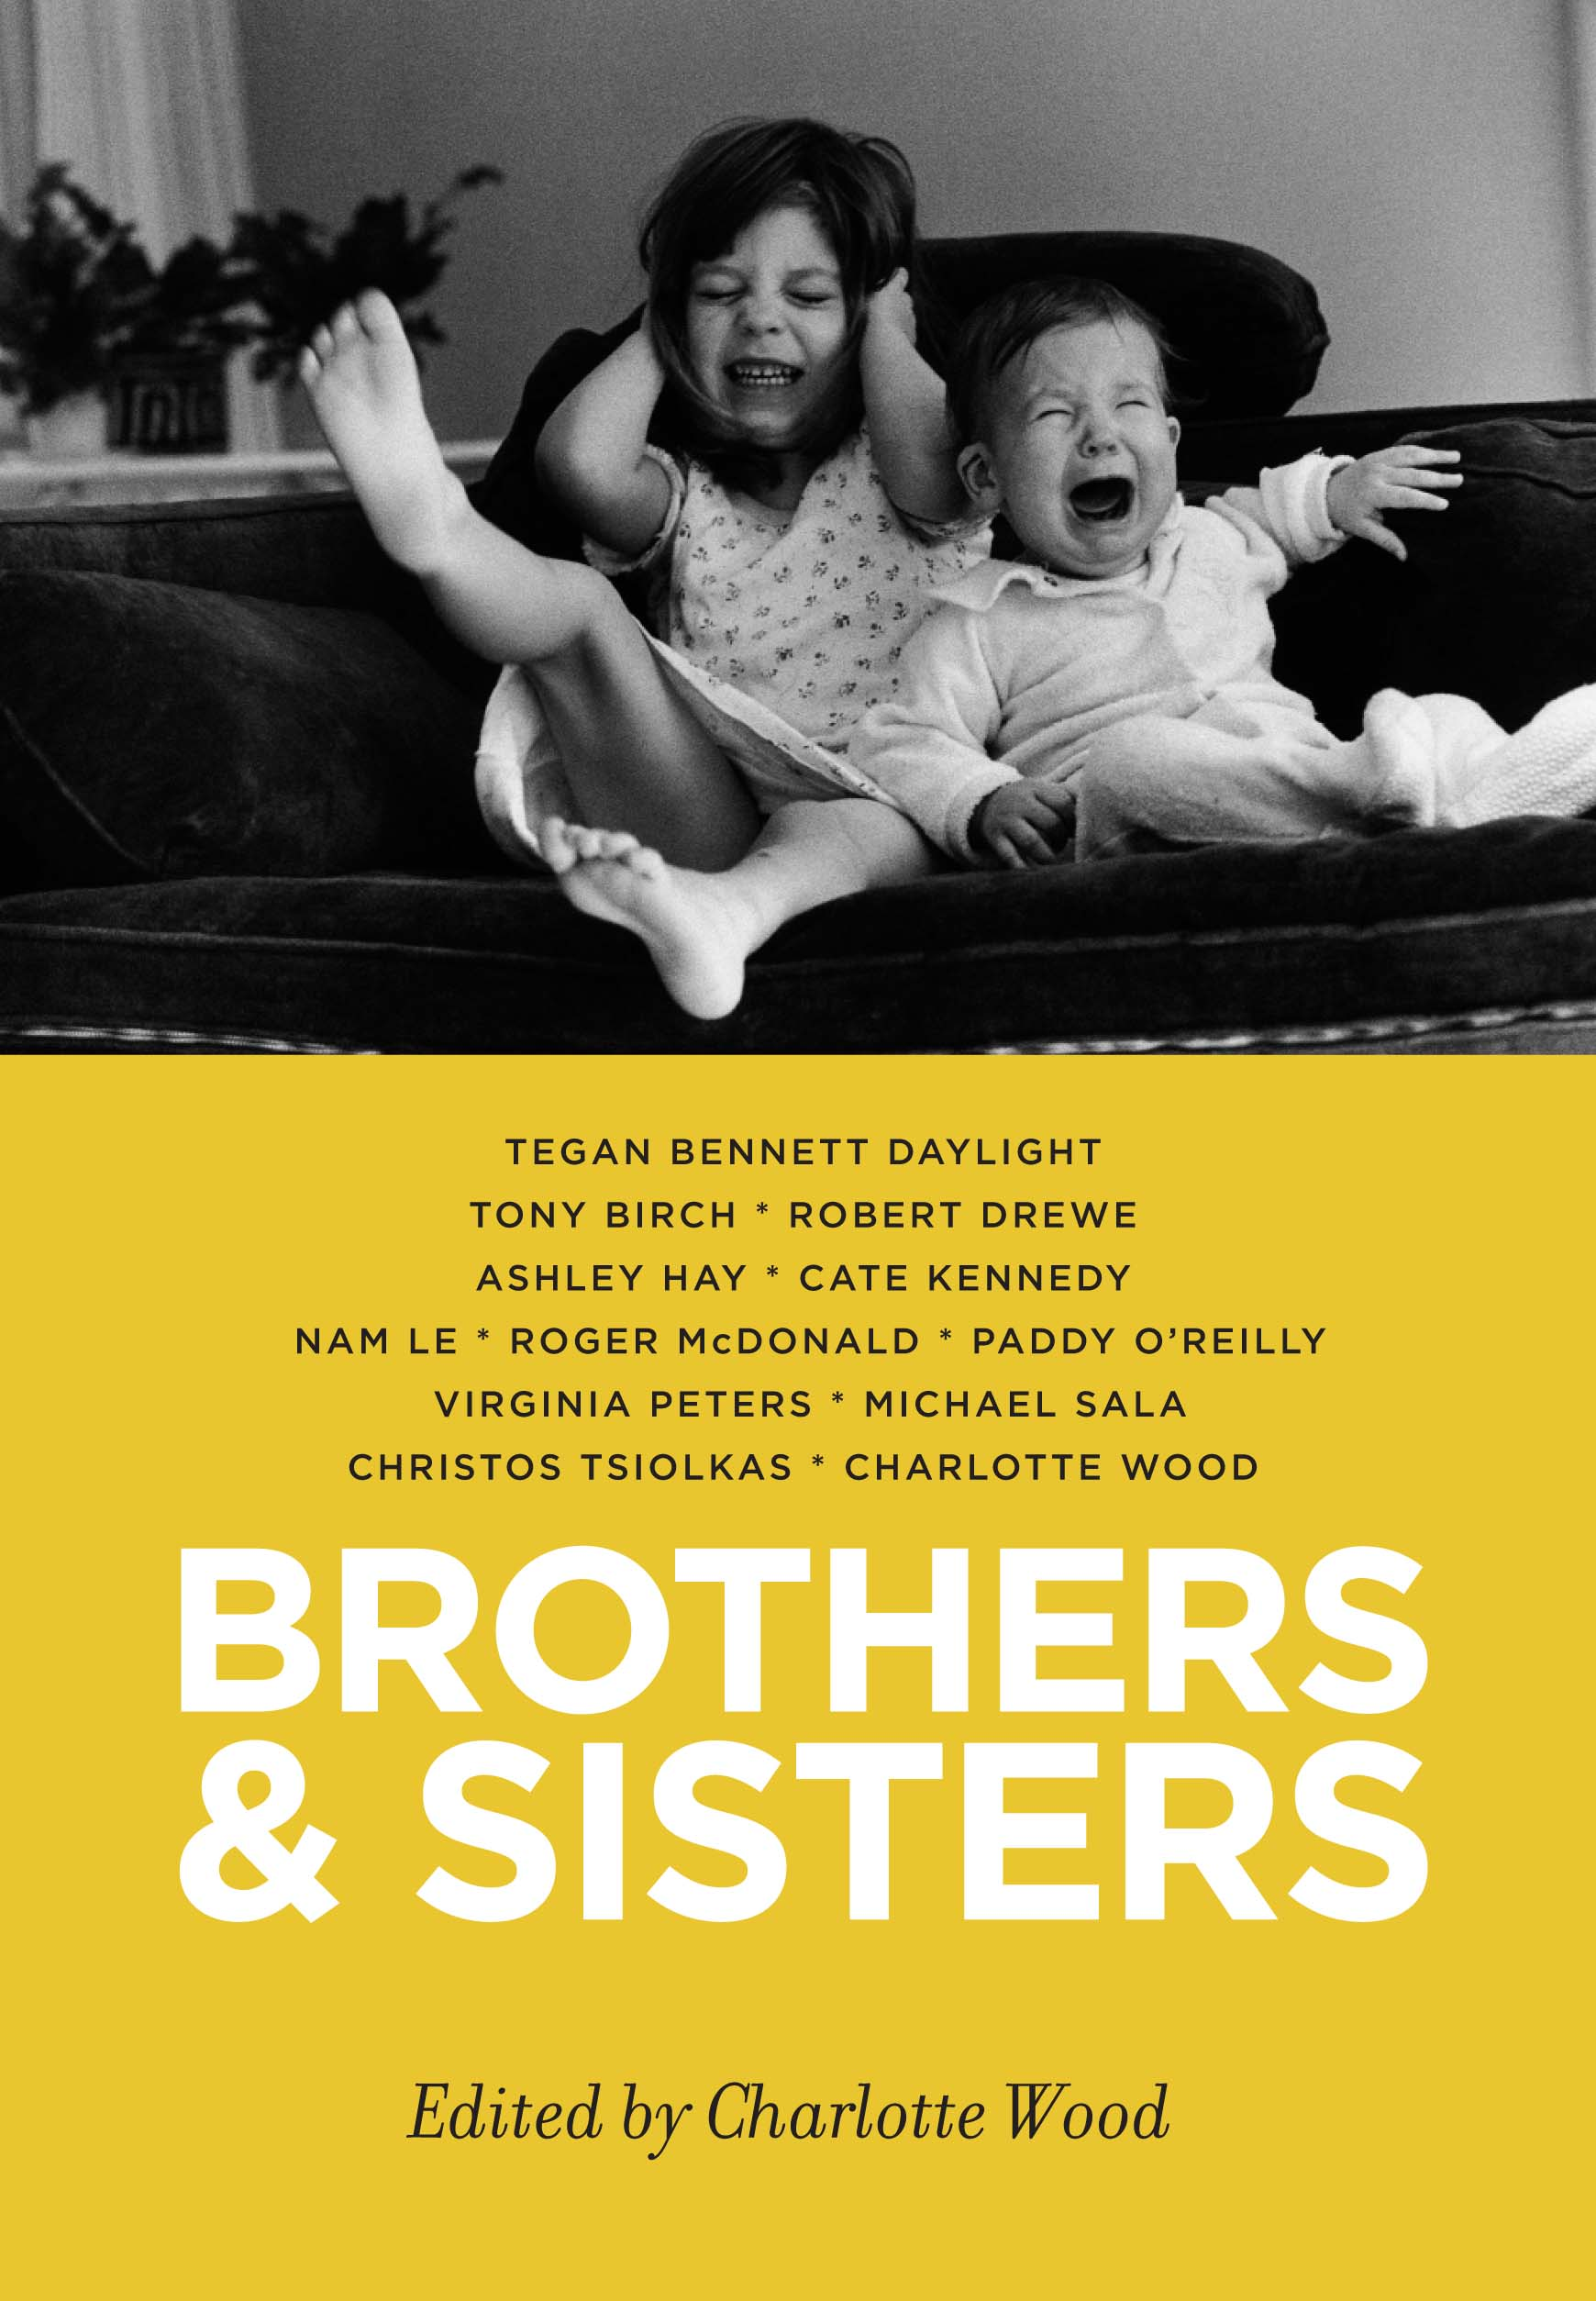 Brothers & Sisters cover